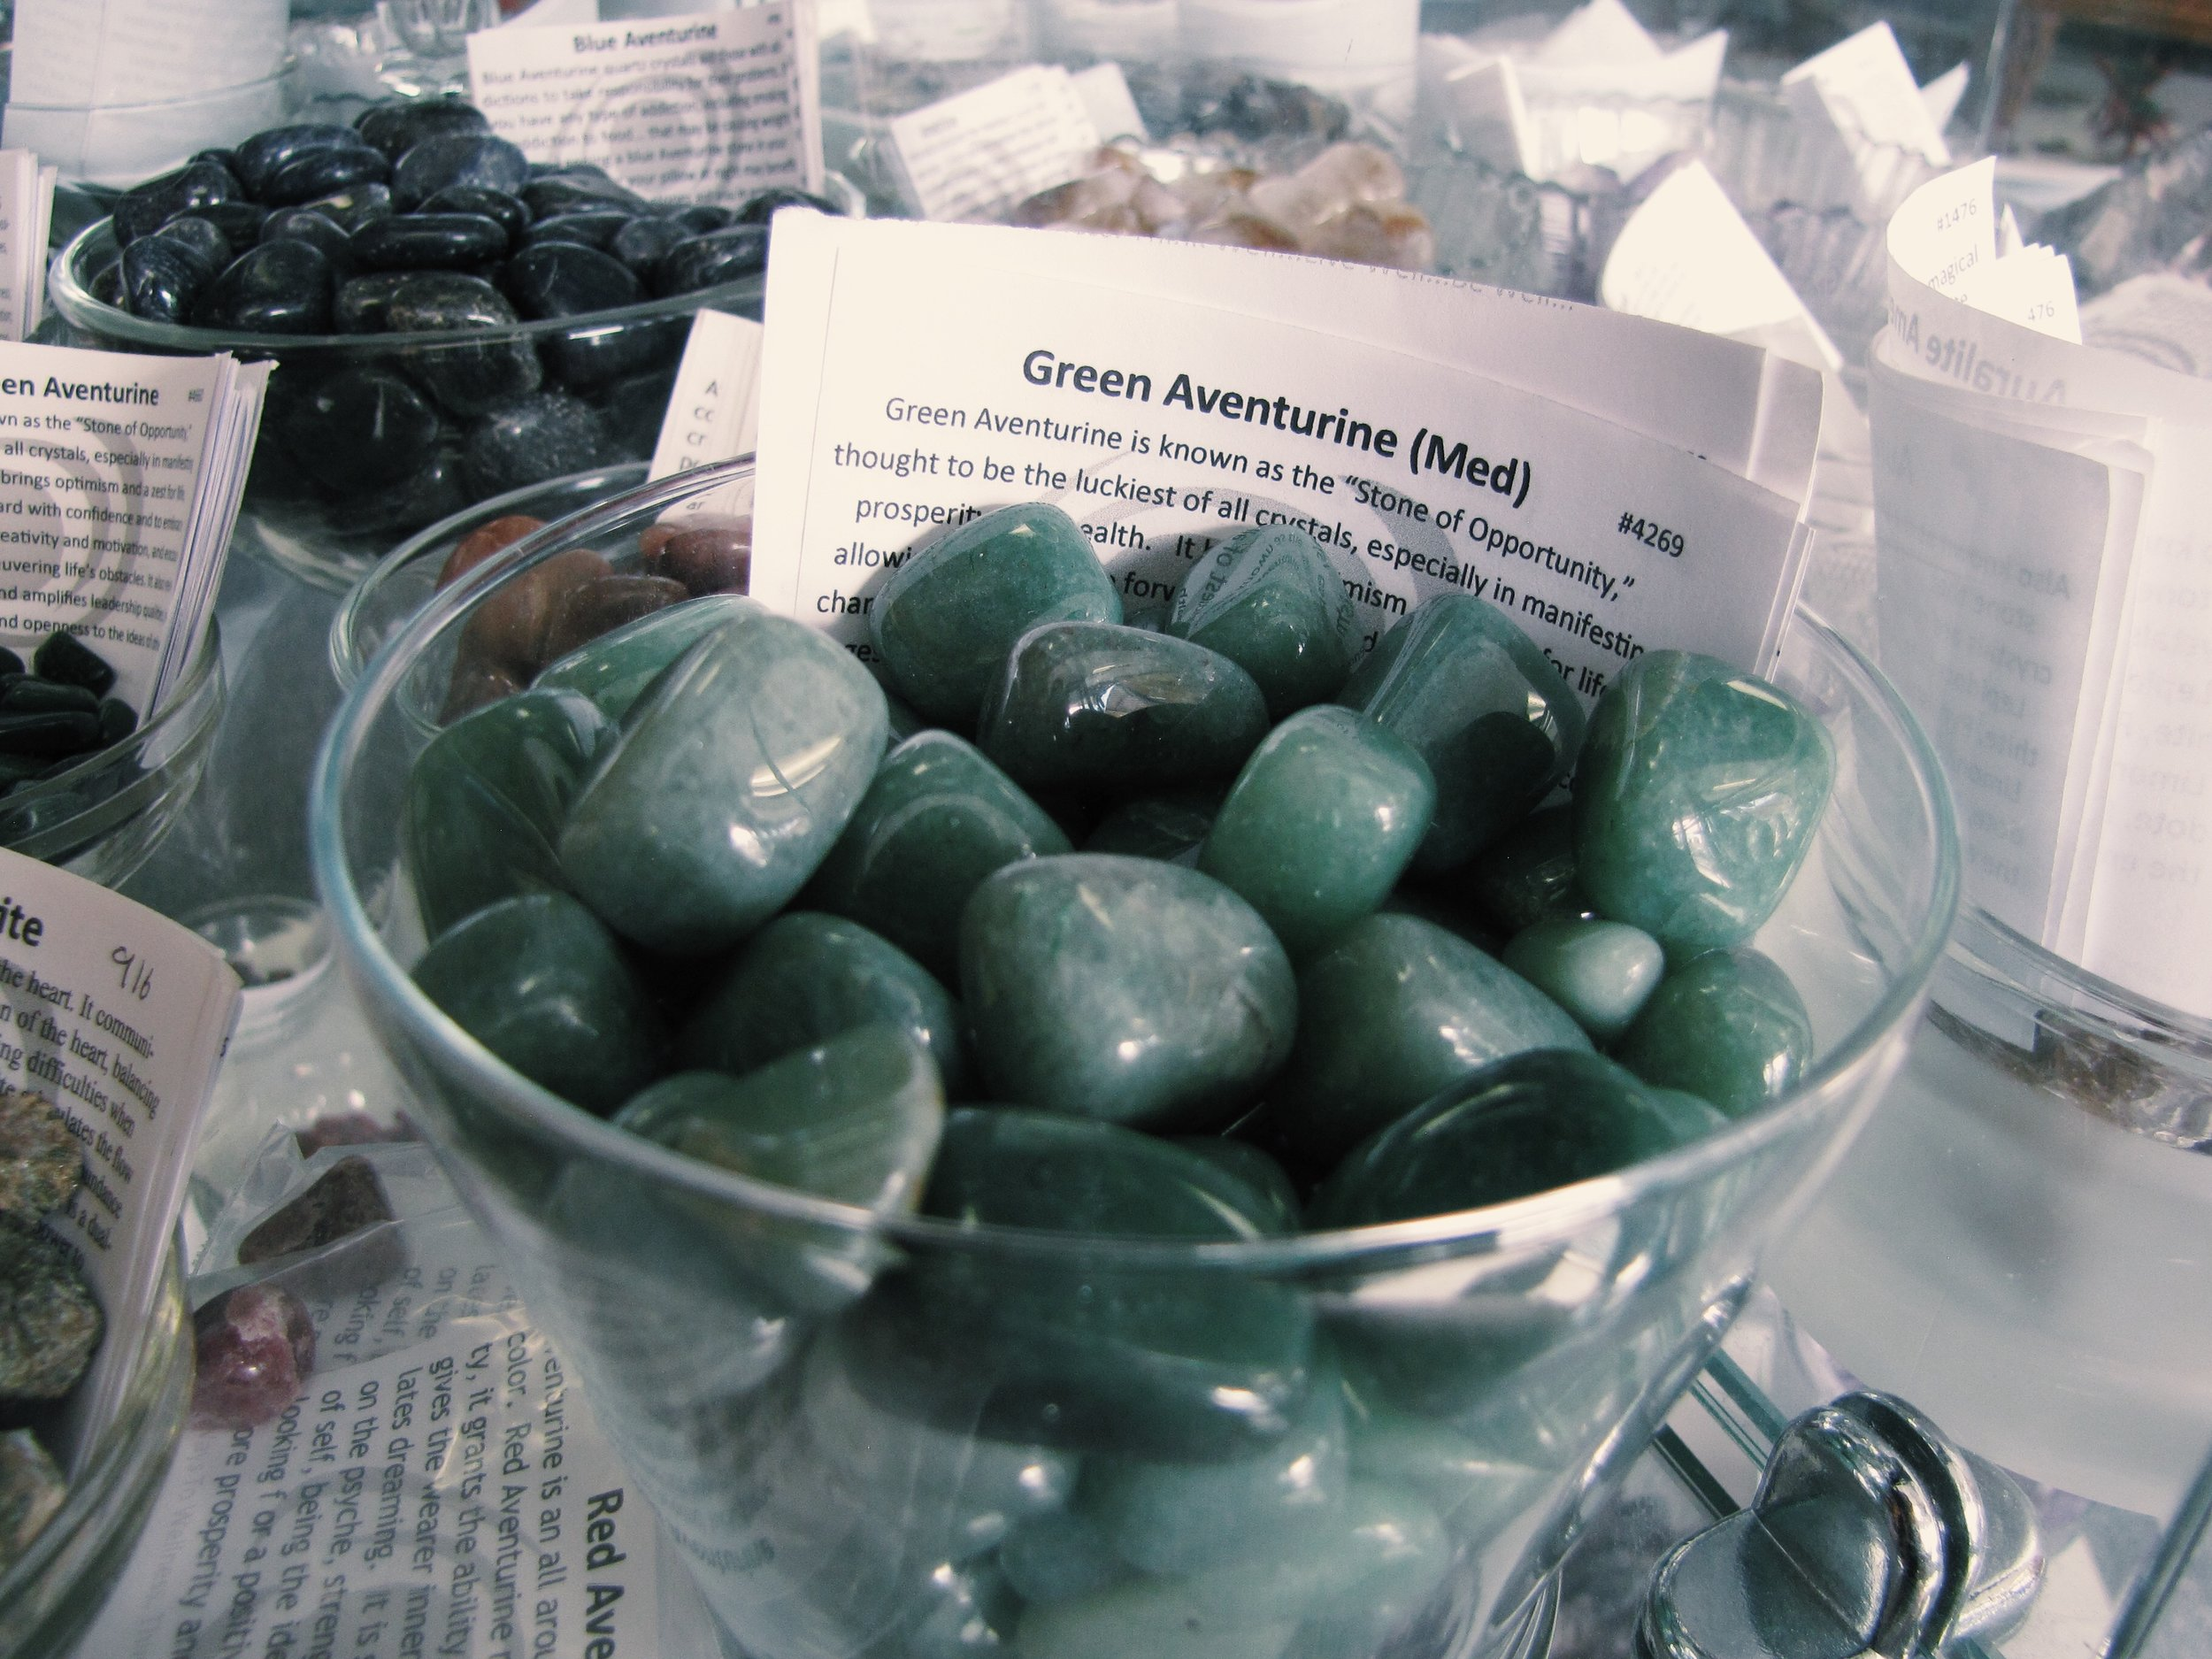 Green Aventurine- The stone of opportunity. Thought to be a stone of luck when manifesting prosperity and wealth. It's also very soothing and works with the heart chakra, loosening and releasing negativity.